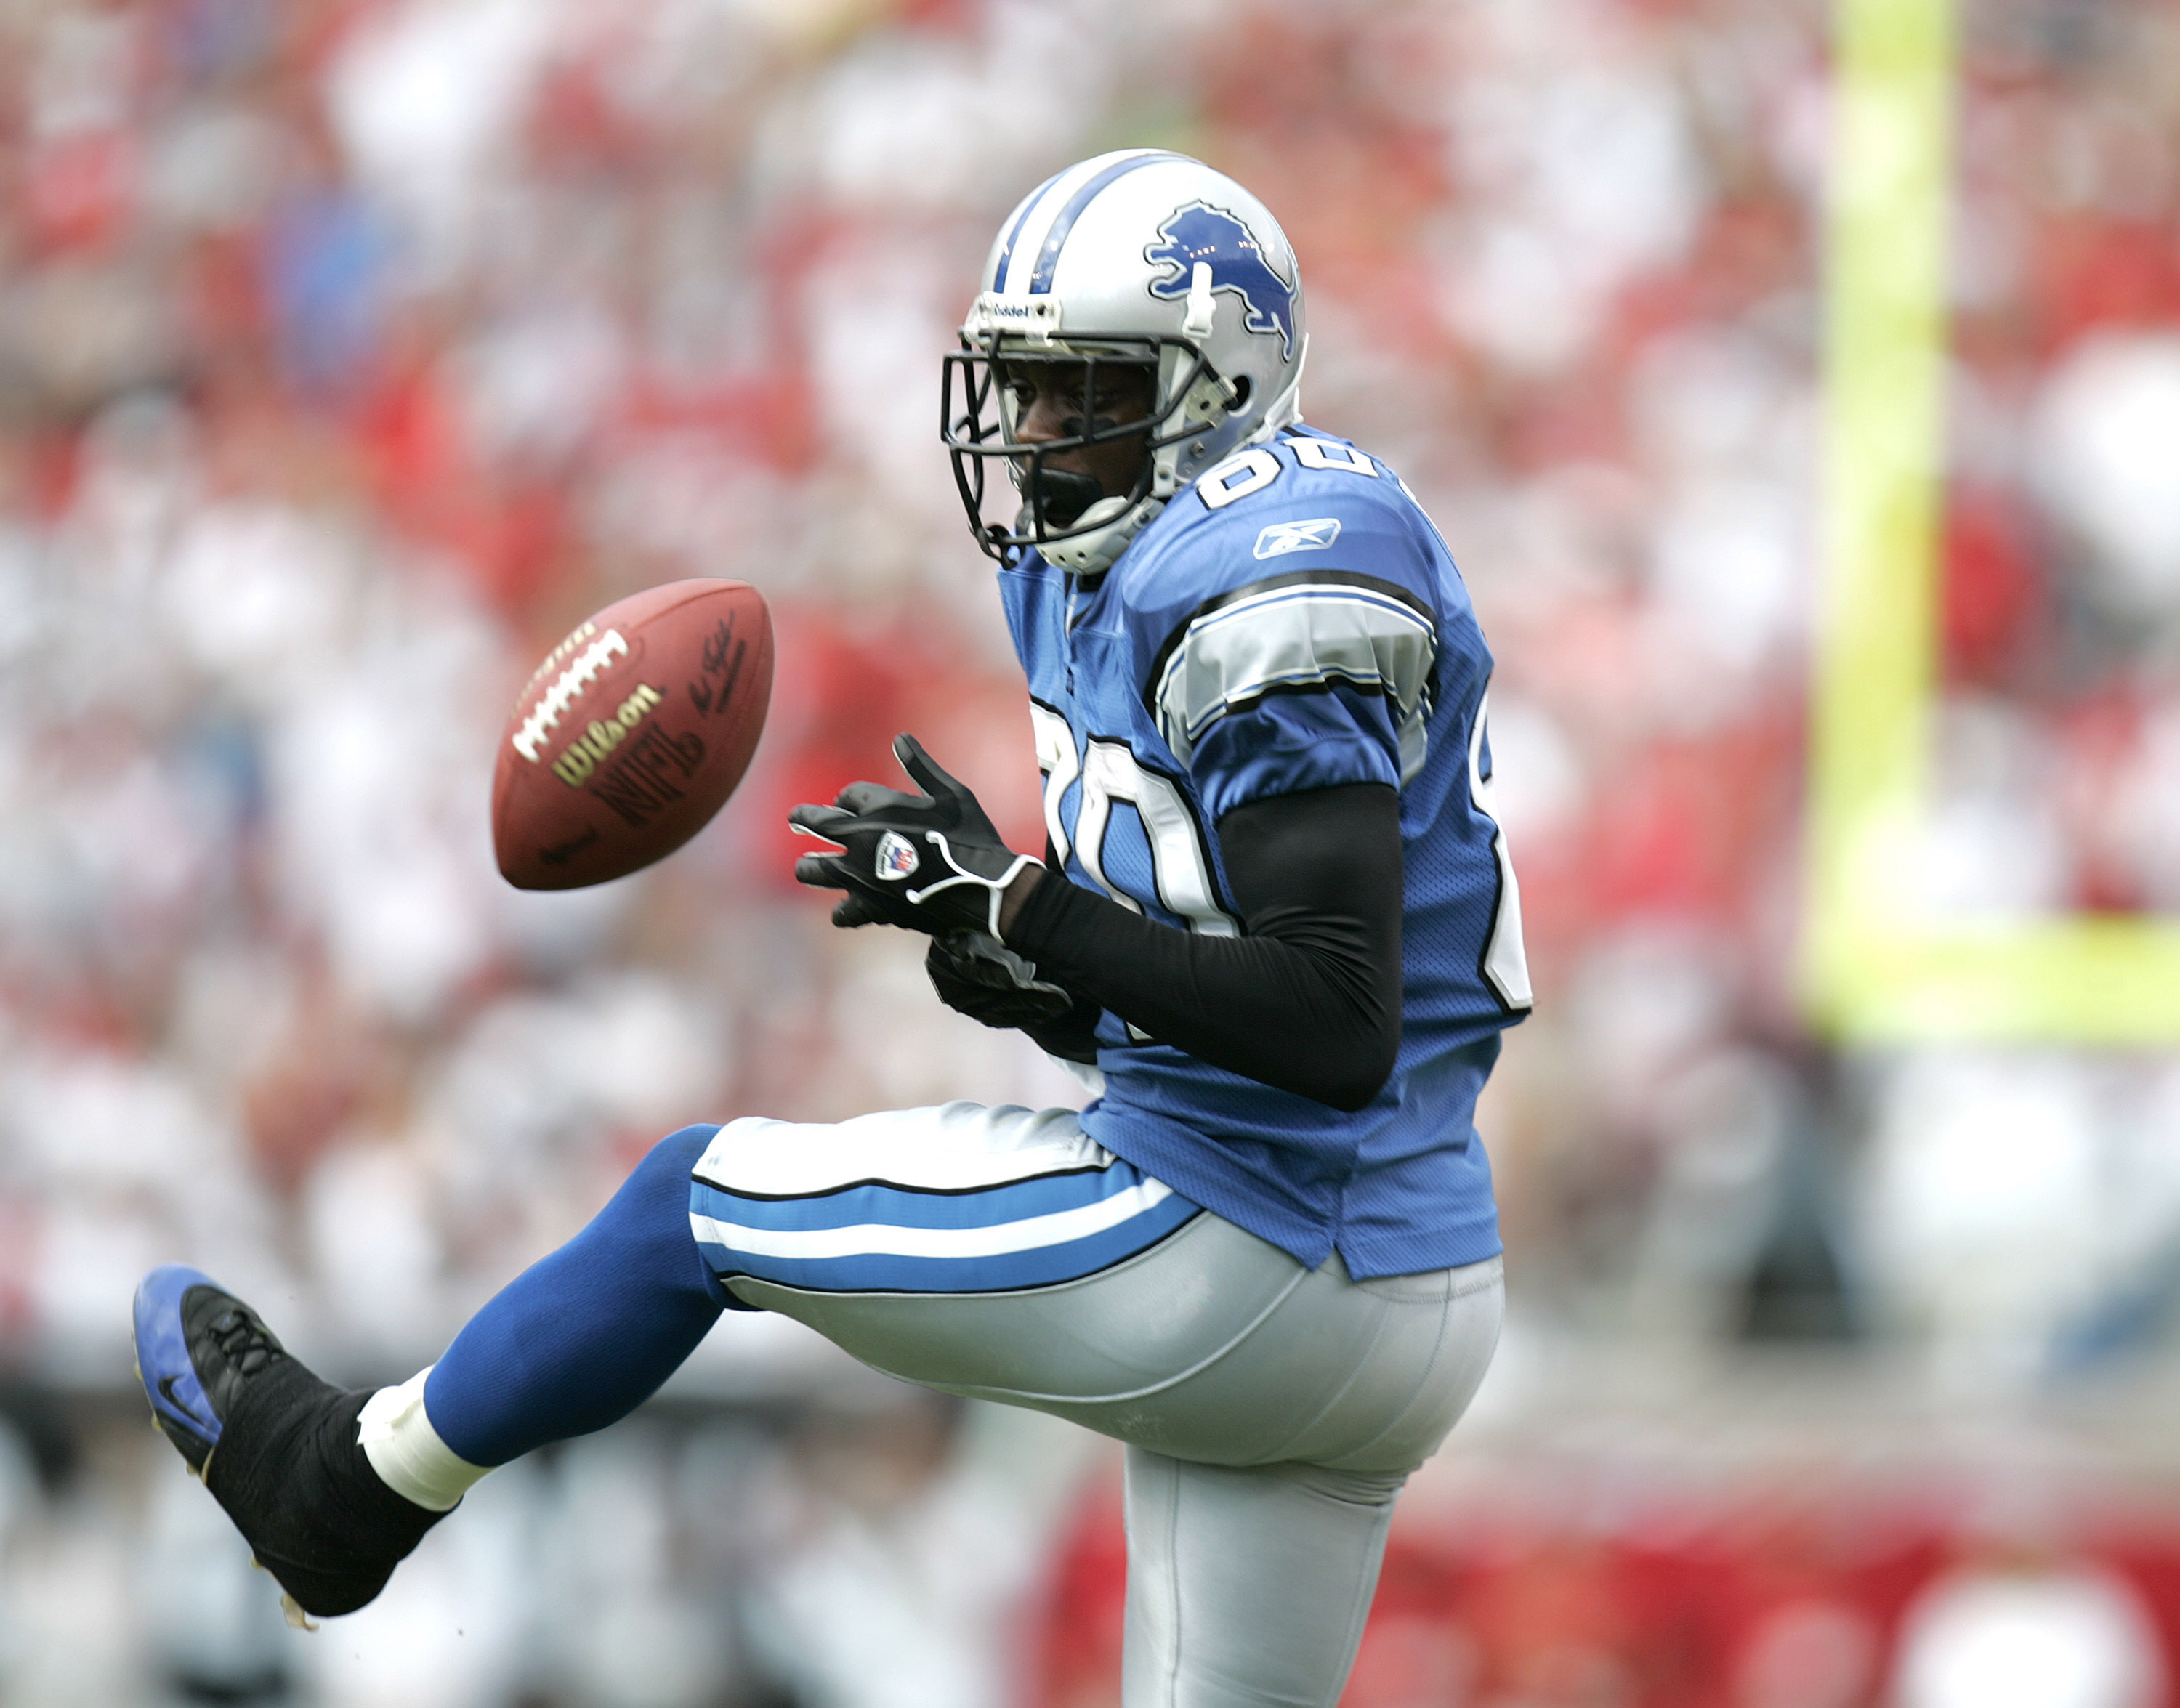 Detroit Lions wide receiver Charles Rogers (80) drops a pass during the fourth quarter against Tampa Bay at Raymond James Stadium in Tampa, Florida on October 2, 2005. Tampa Bay defeated Detroit 17-13. (Photo by Allen Kee/Getty Images)